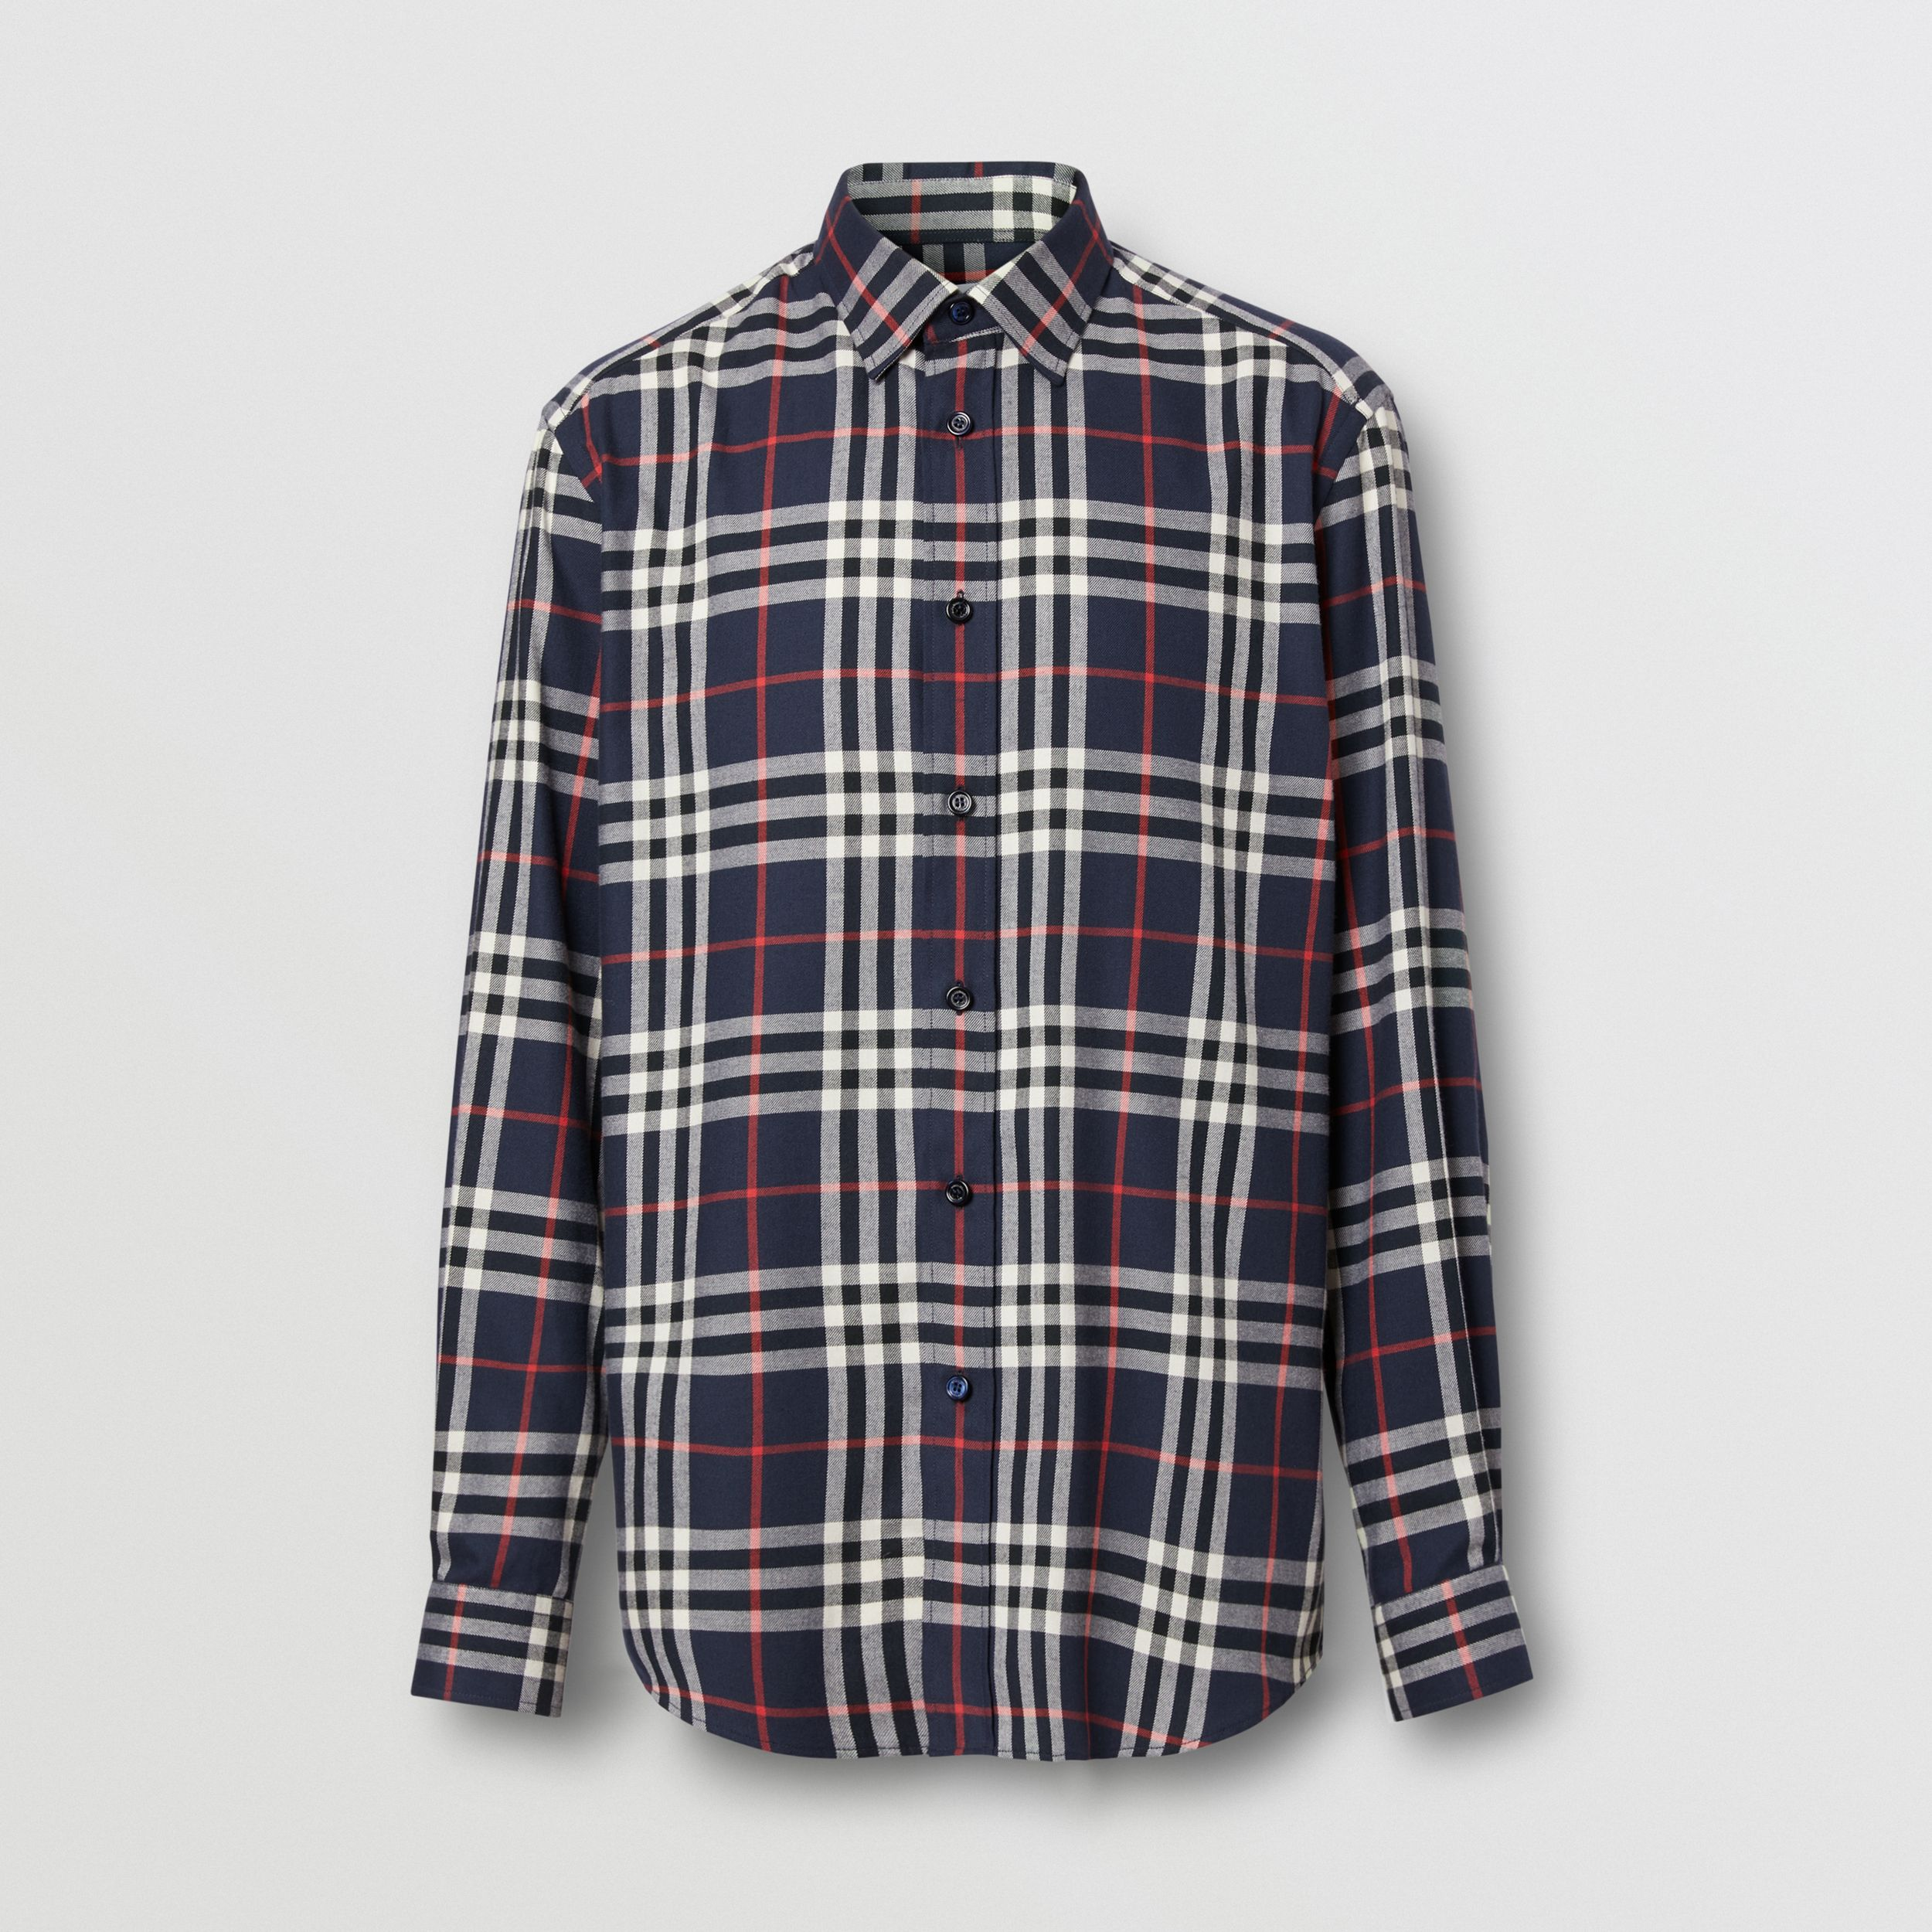 Vintage Check Cotton Flannel Shirt in Navy - Men | Burberry - 4